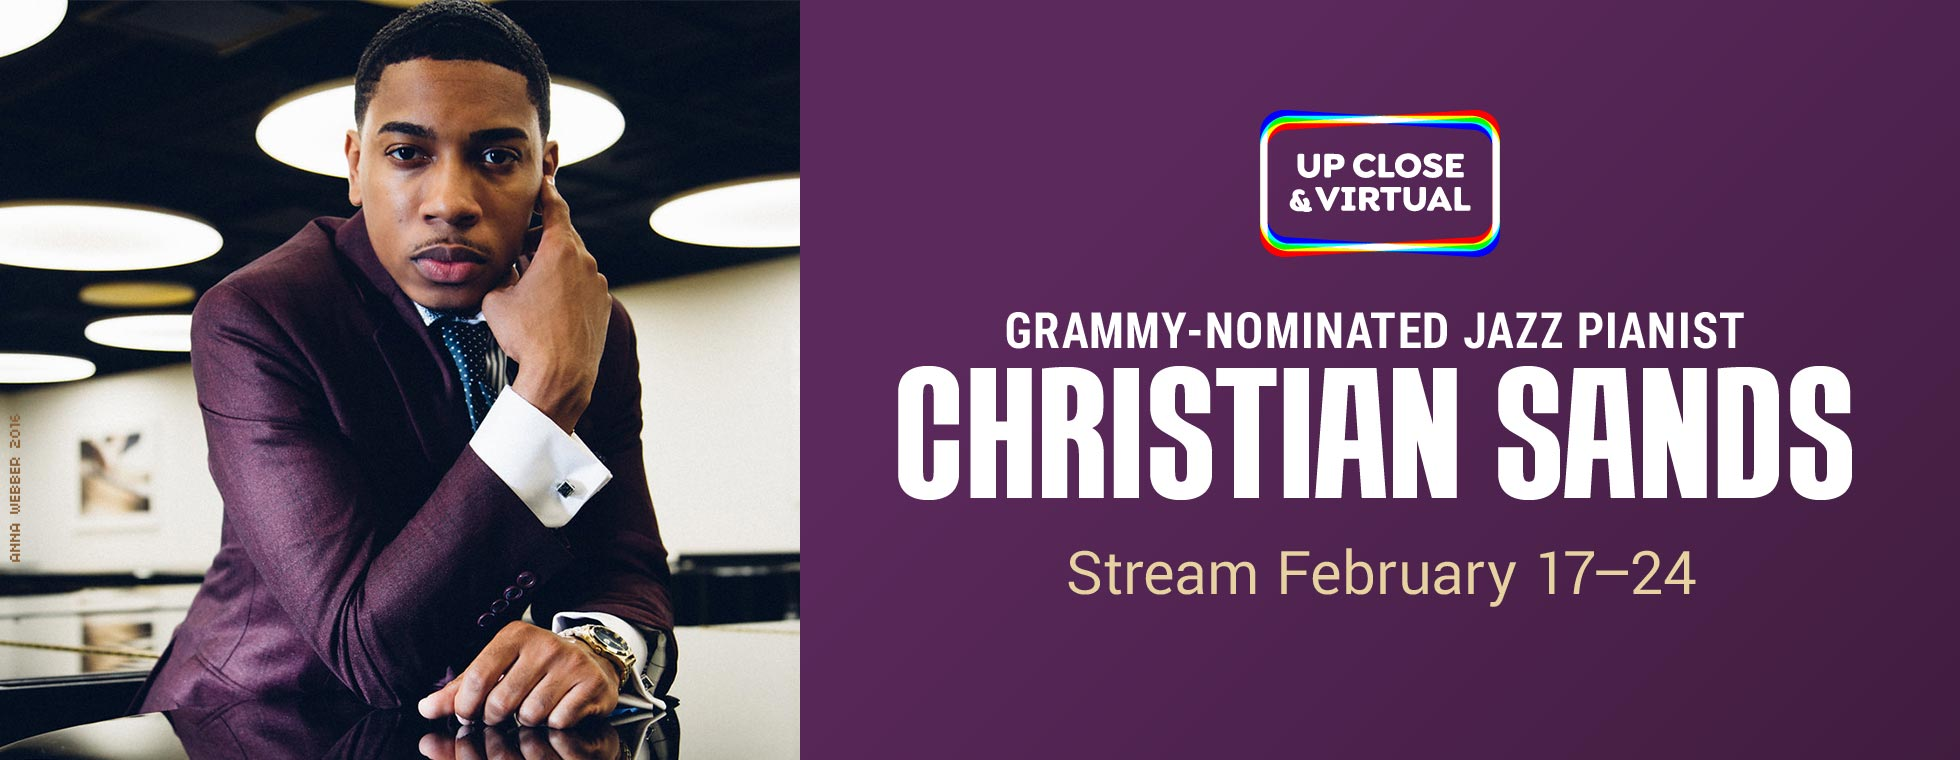 Grammy-nominated jazz pianist Christian Sands. Stream February 17–24, 2021.